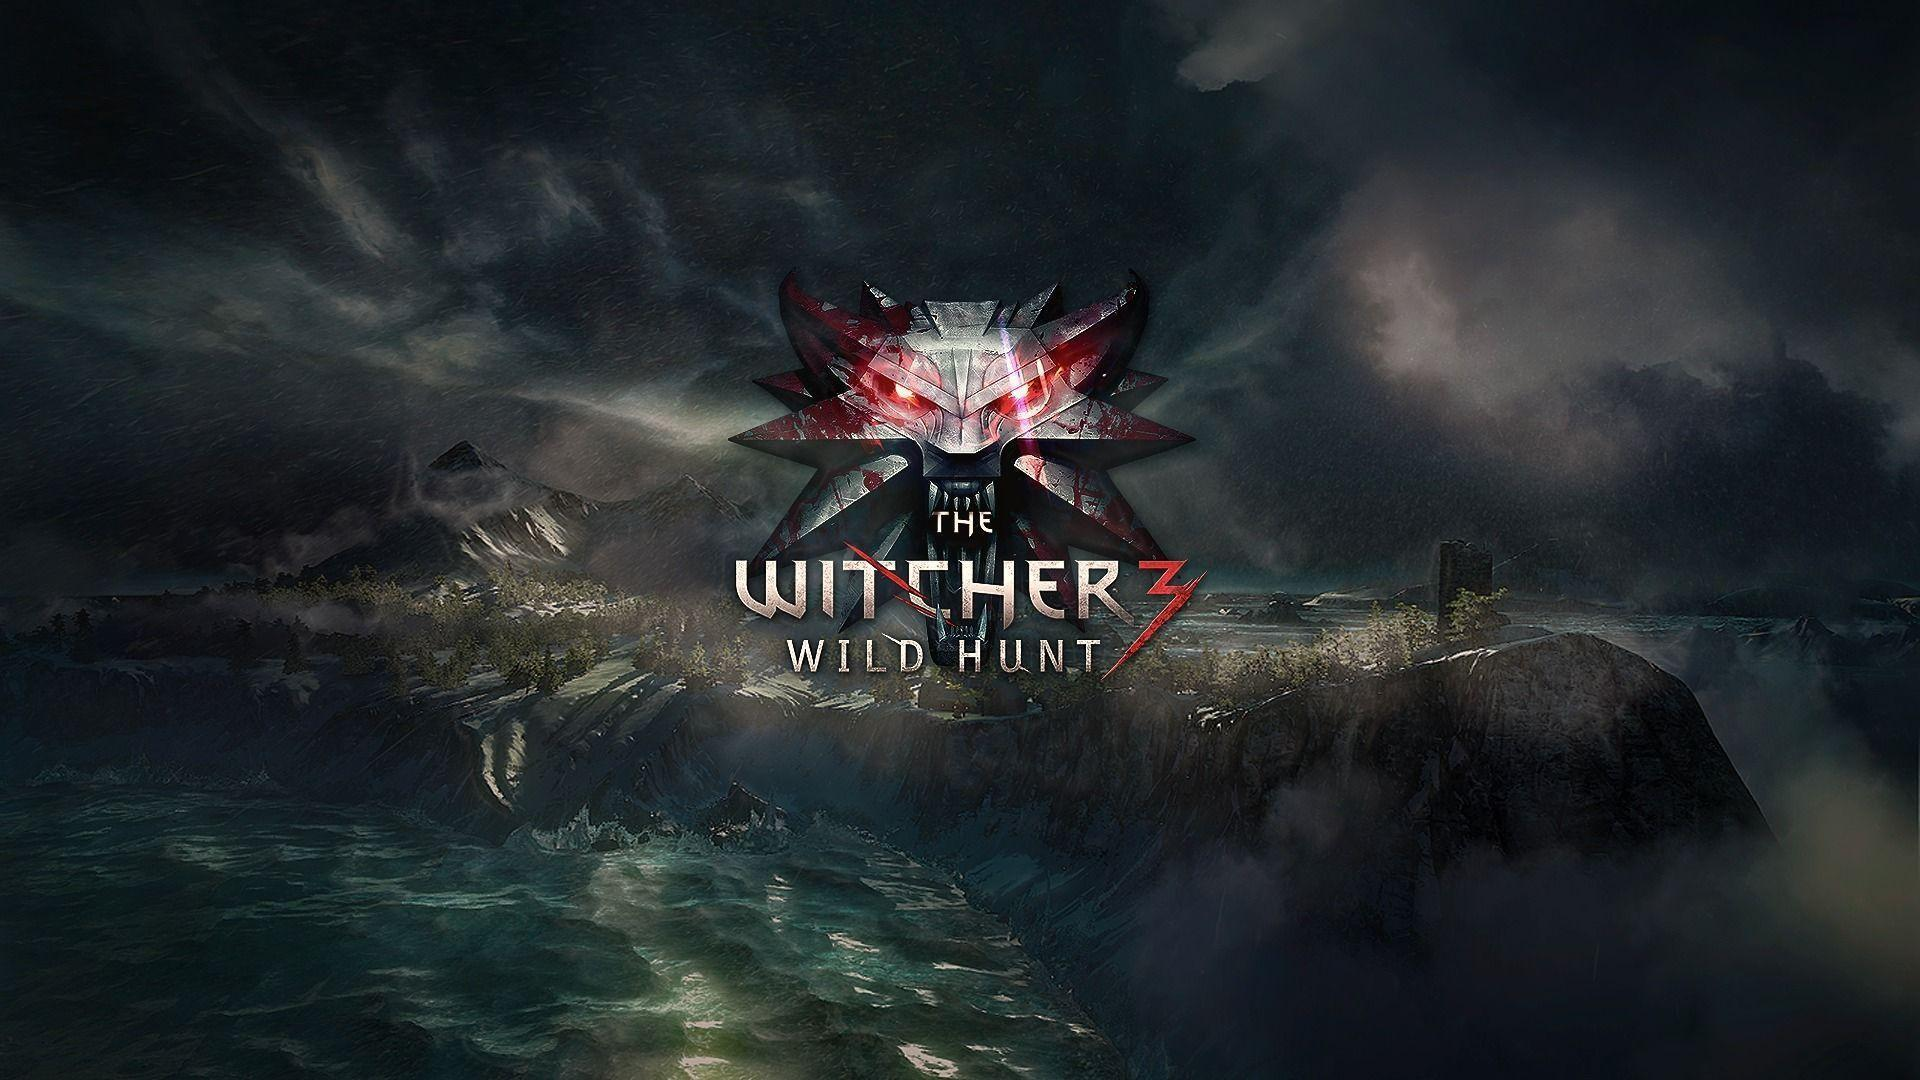 The Witcher 3 Wild Hunt Harbour wallpapers – wallpapers free download